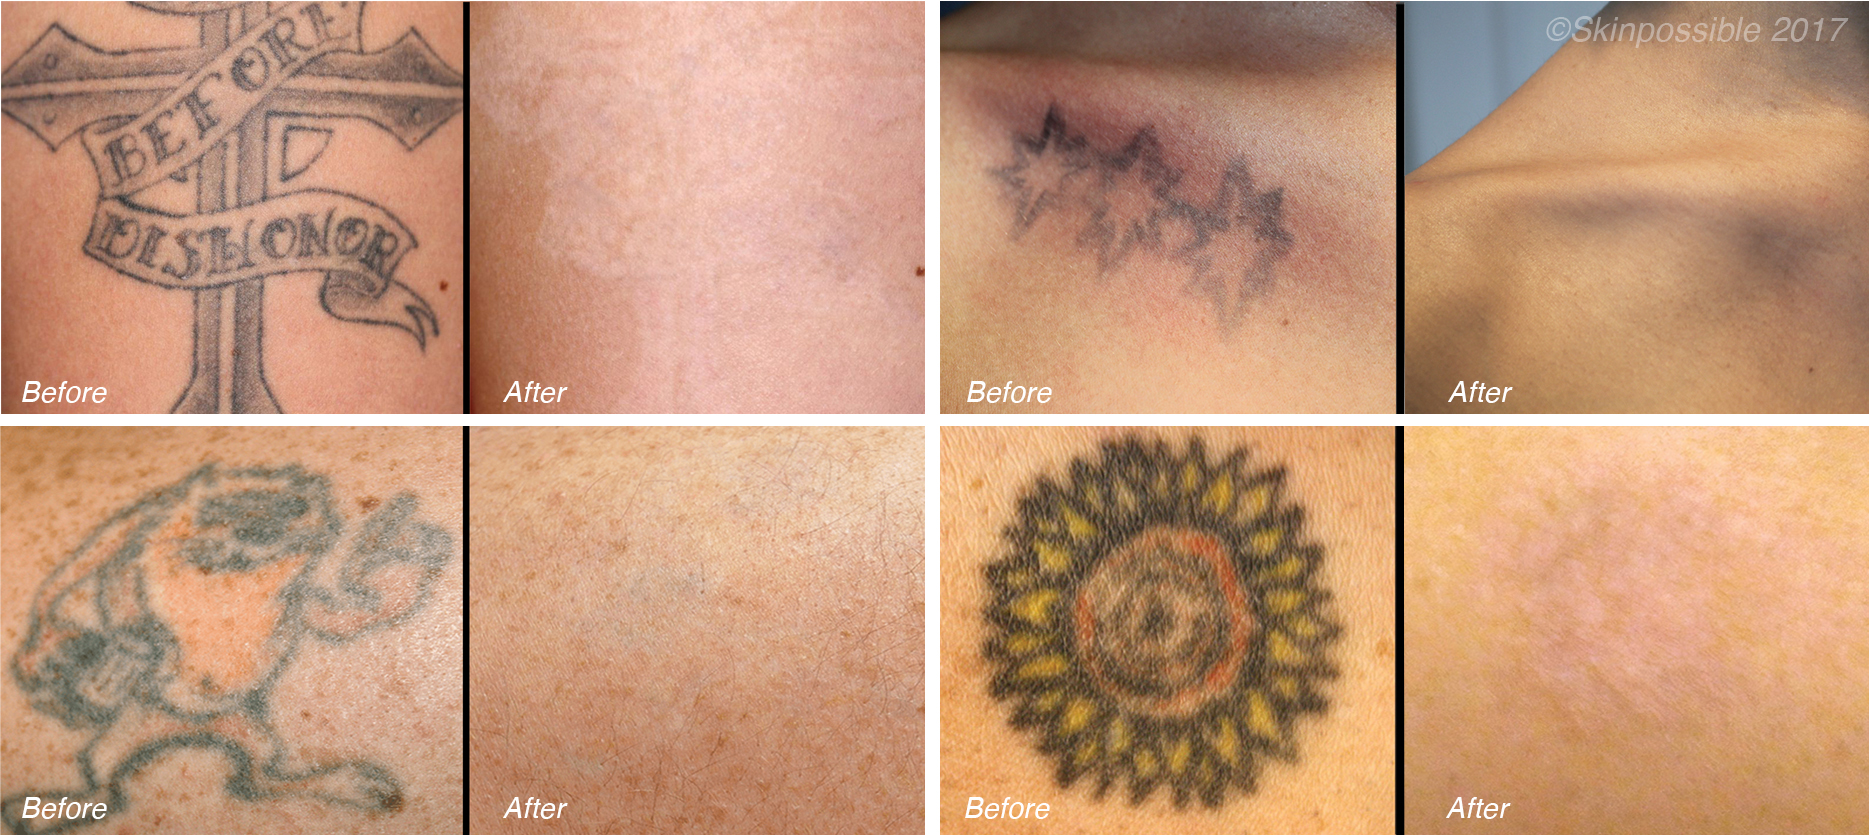 Laser Tattoo Removal - Skinpossible Laser & Light Calgary Laser Clinic